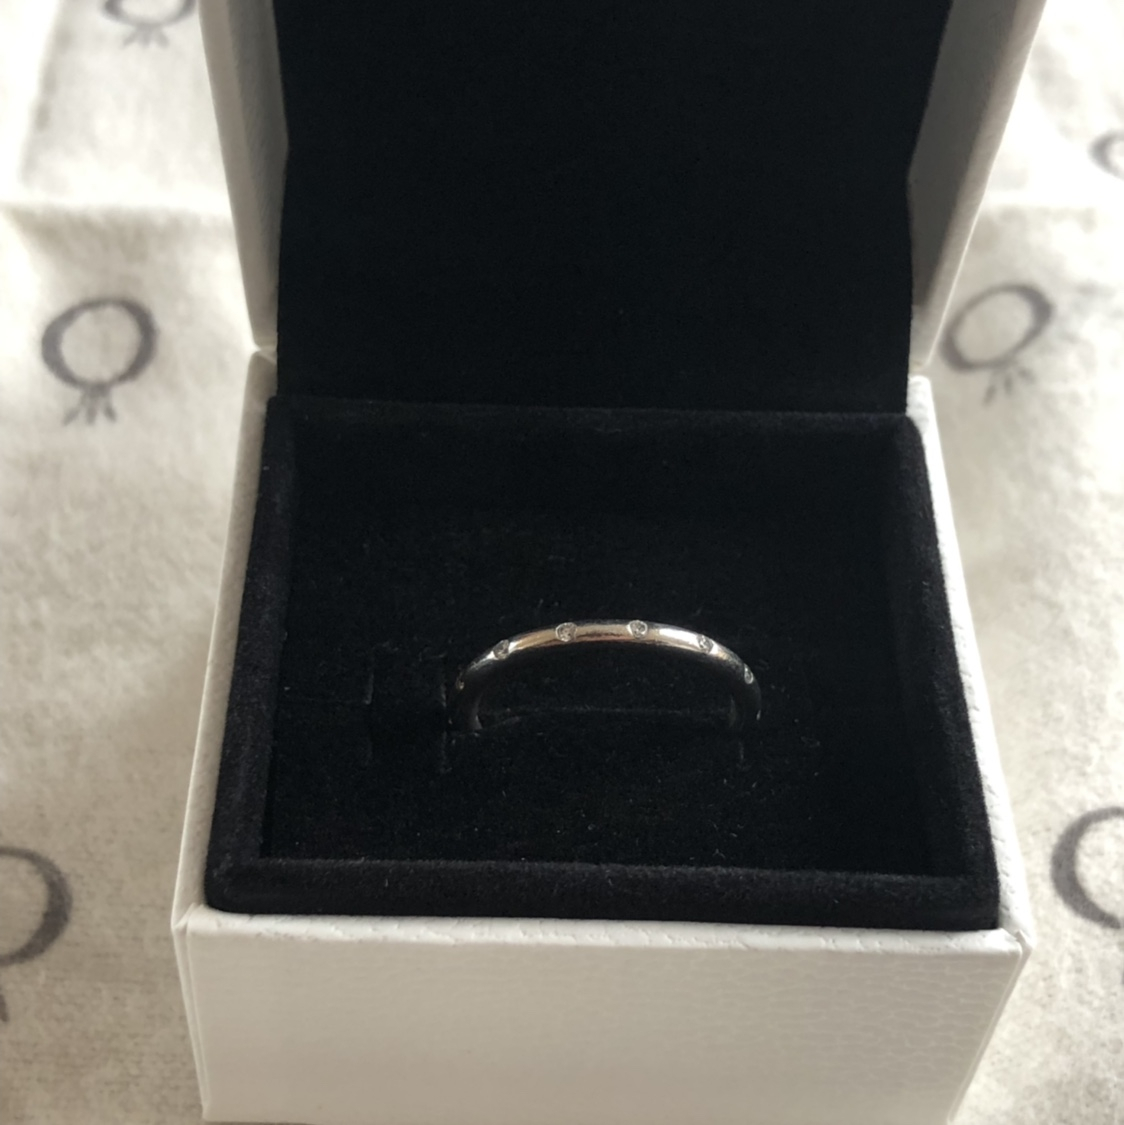 Pandora Simple Sparkling Band Ring Sterling Silver, – Depop Within Current Simple Sparkling Band Rings (View 12 of 25)